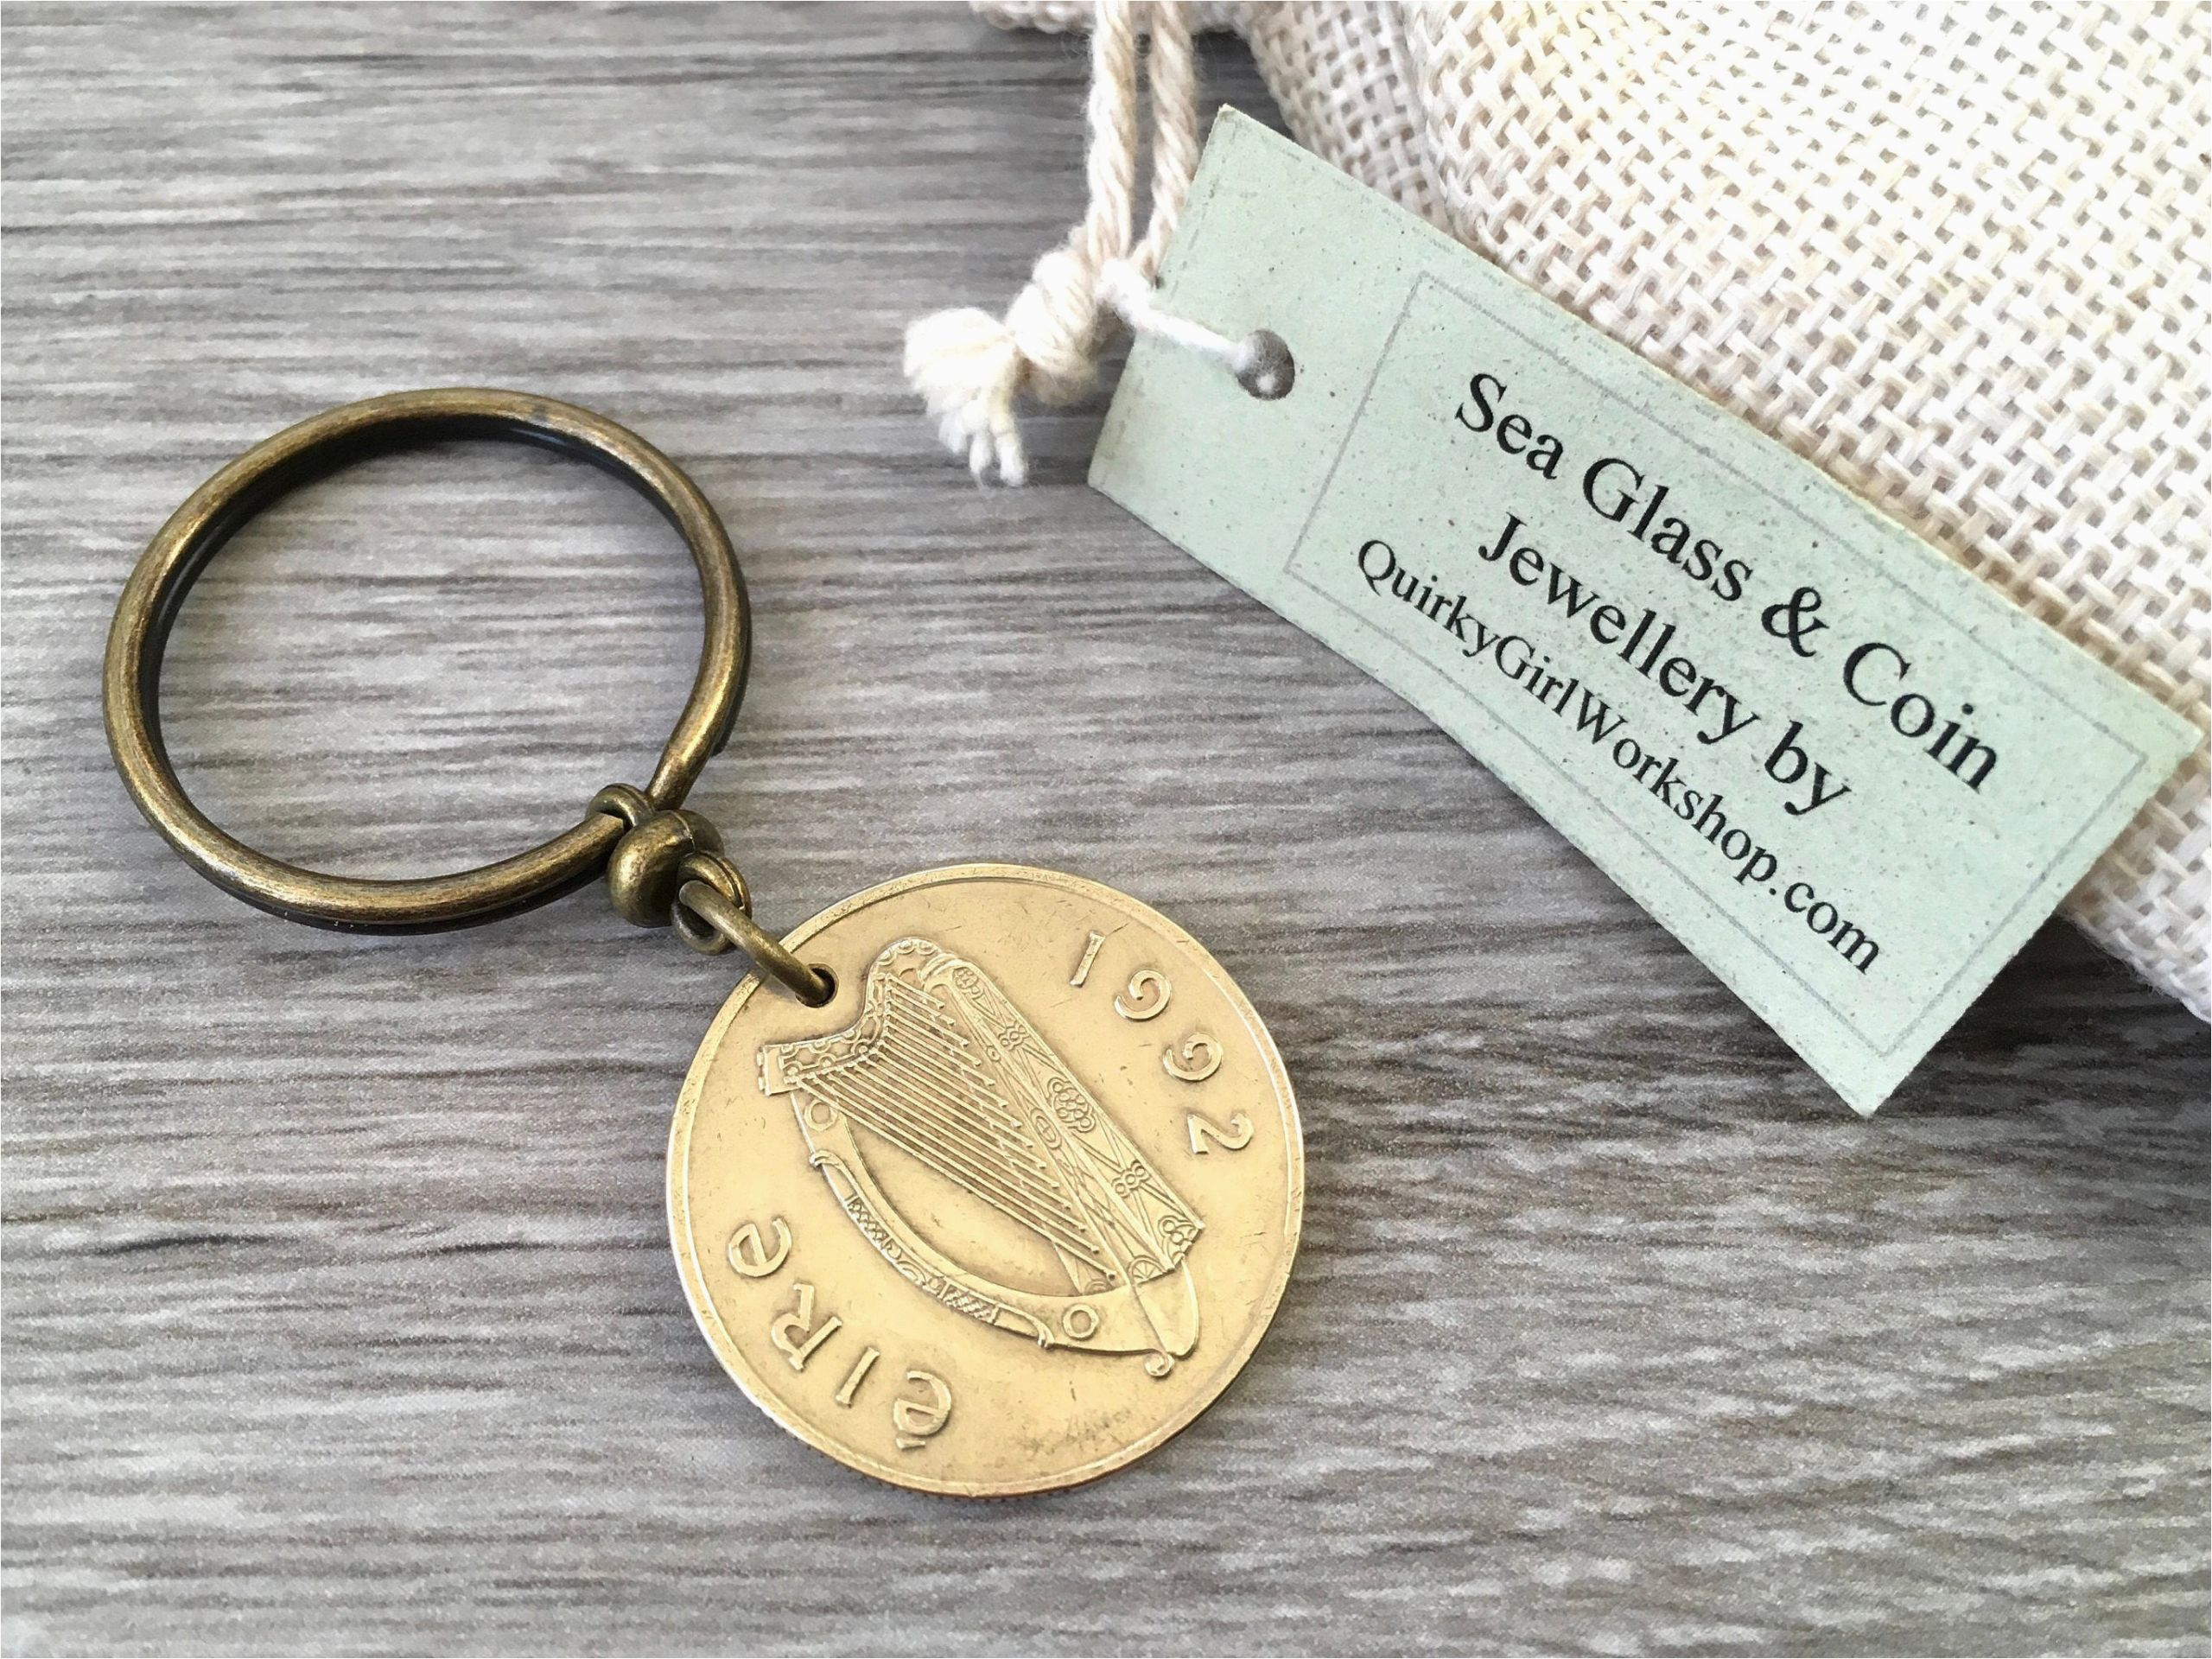 26th Birthday Gifts for Him 1992 or 1994 Irish Coin Keyring Ireland Keychain 24th or